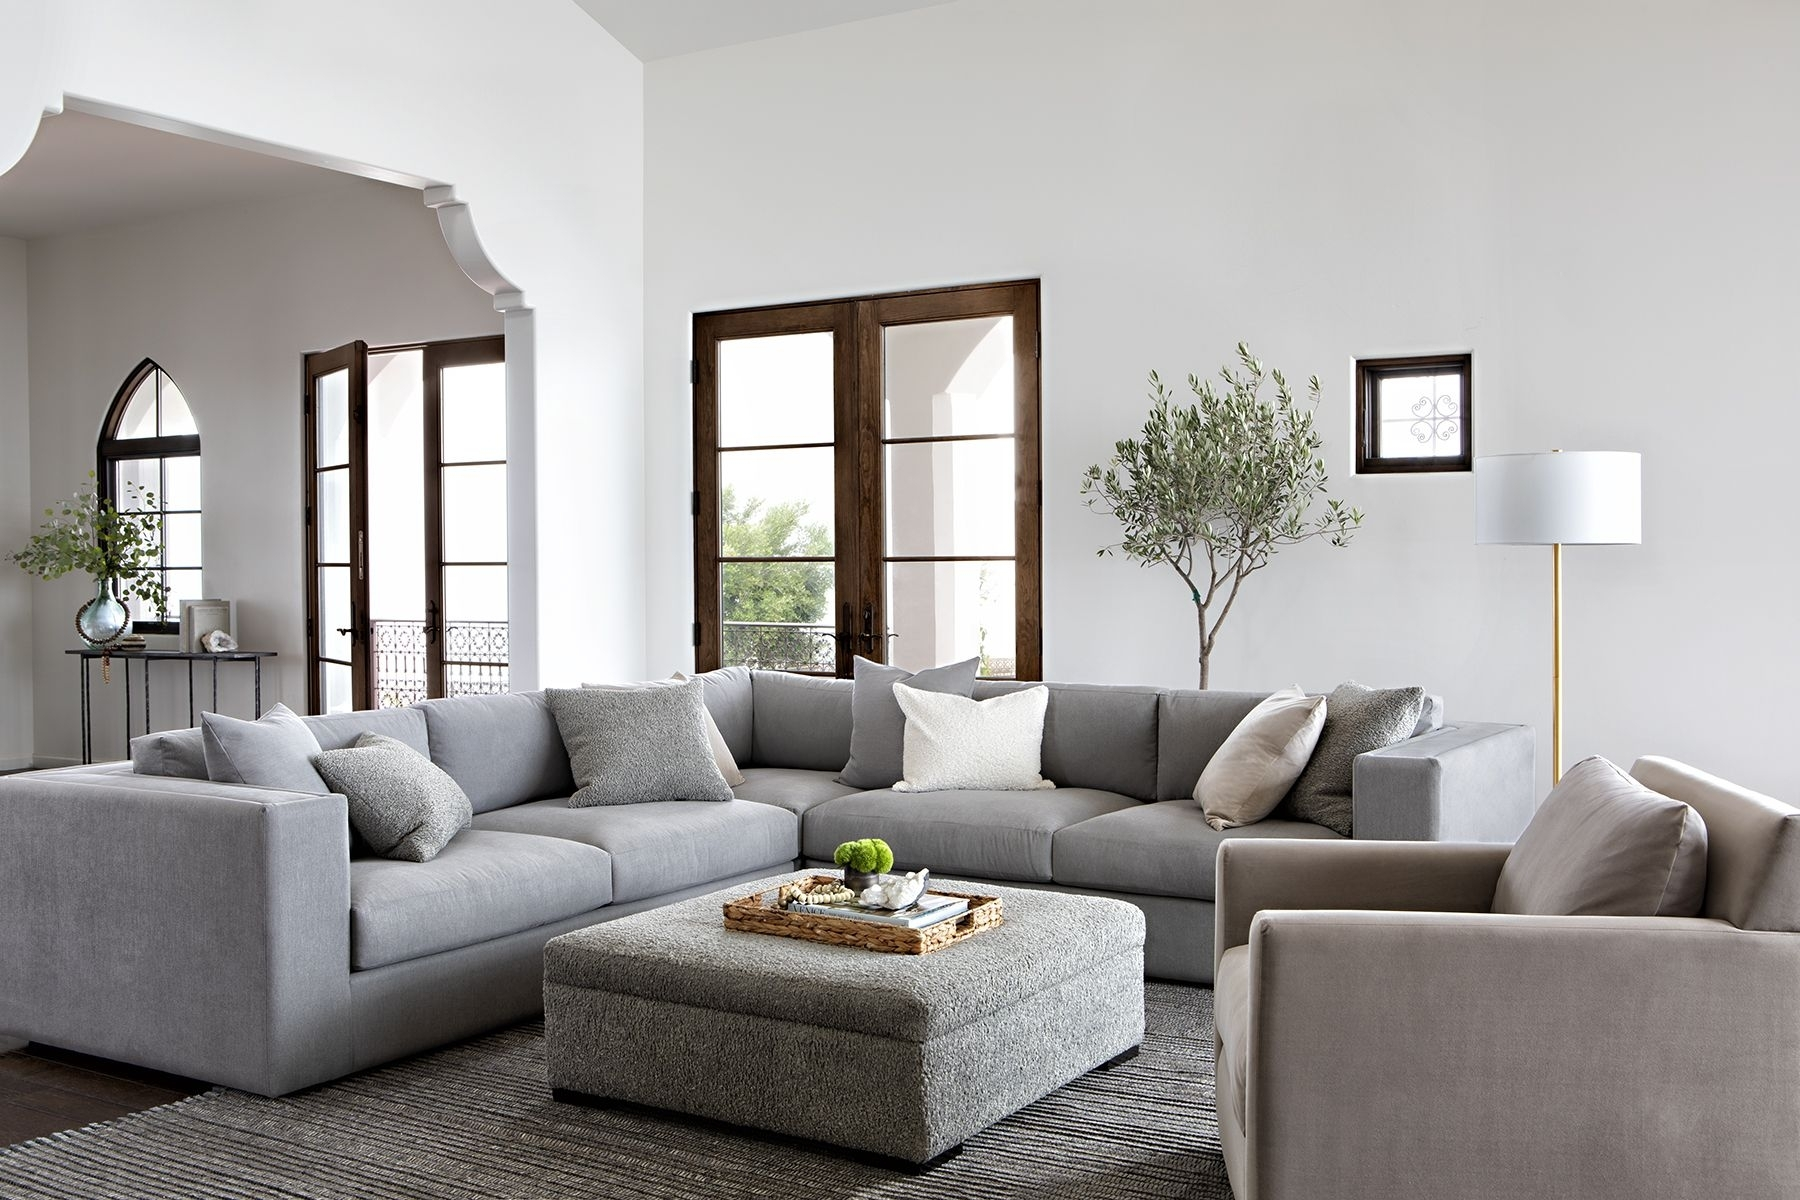 Nate Berkus & Jeremiah Brent's Newest Affordable Collection | Rue with Whitley 3 Piece Sectionals By Nate Berkus And Jeremiah Brent (Image 16 of 32)